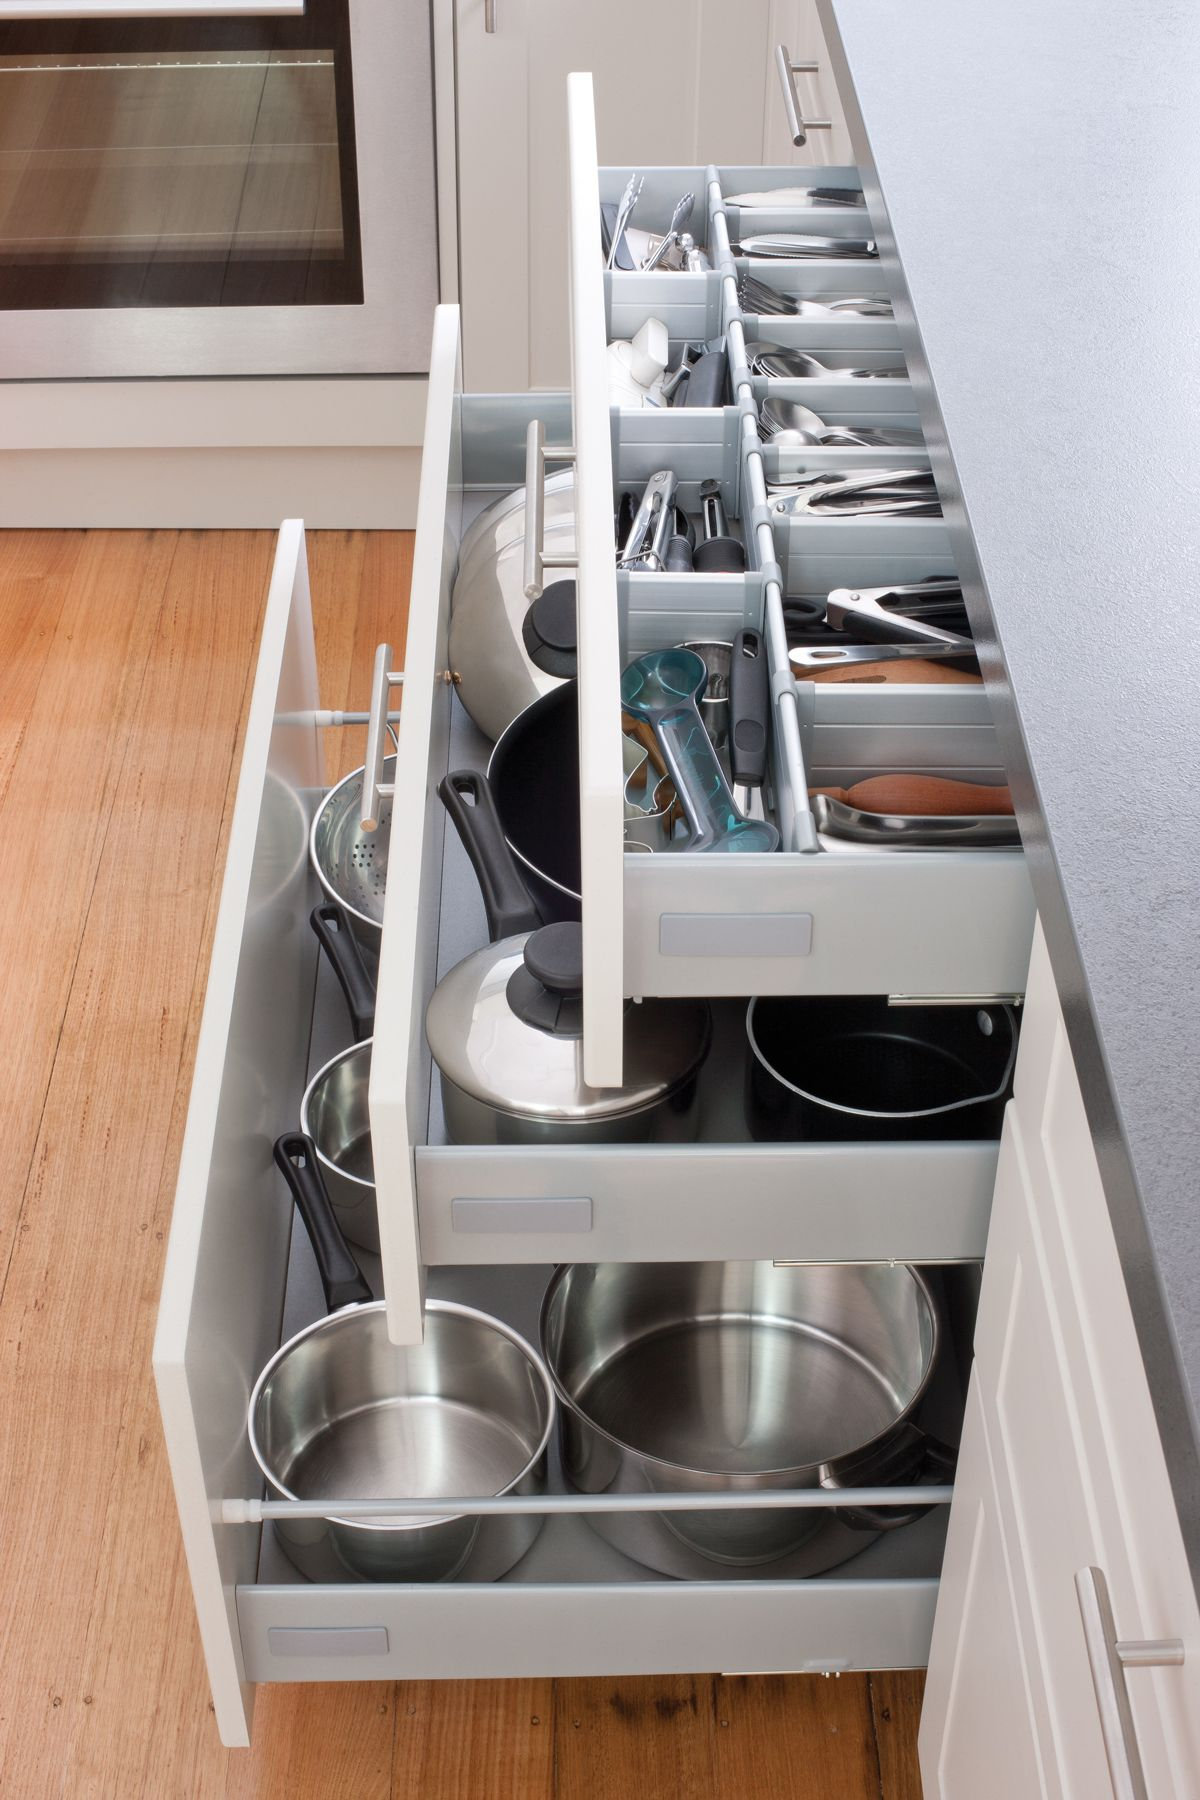 Keep Your Kitchen In Order With Our Pot Drawers And Cutlery Visit Kaboodle Au For More Inspiration